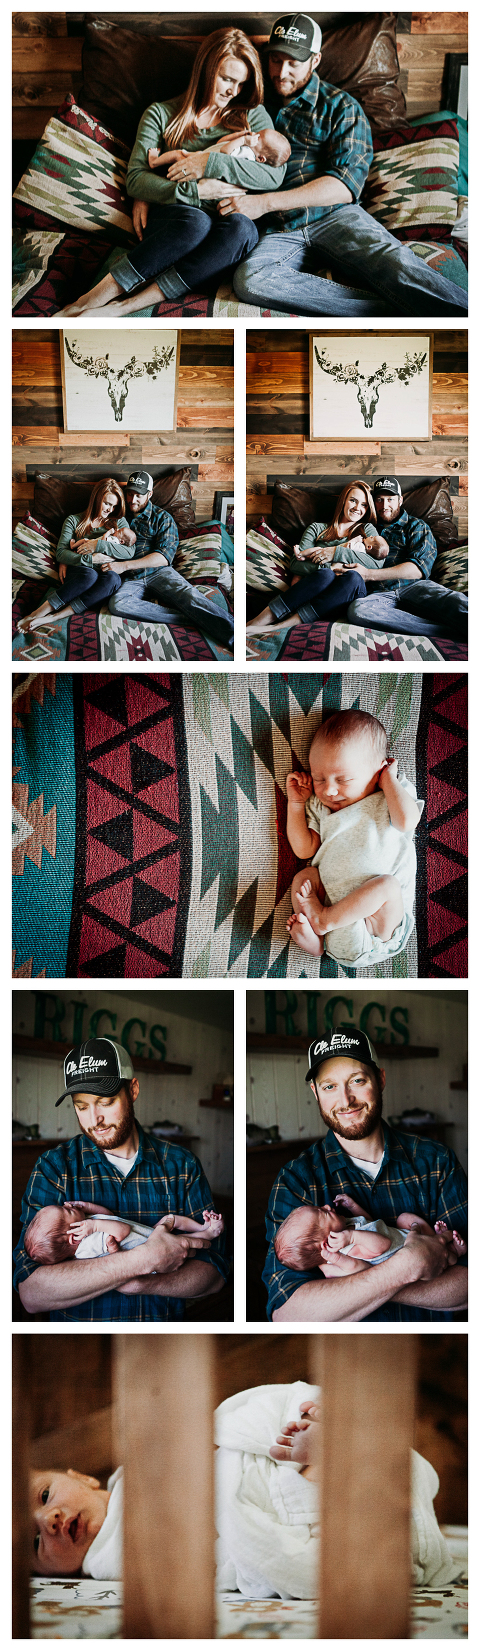 Baby Riggs, lifestyle newborn photography by Hailey Haberman in Ellensburg WA